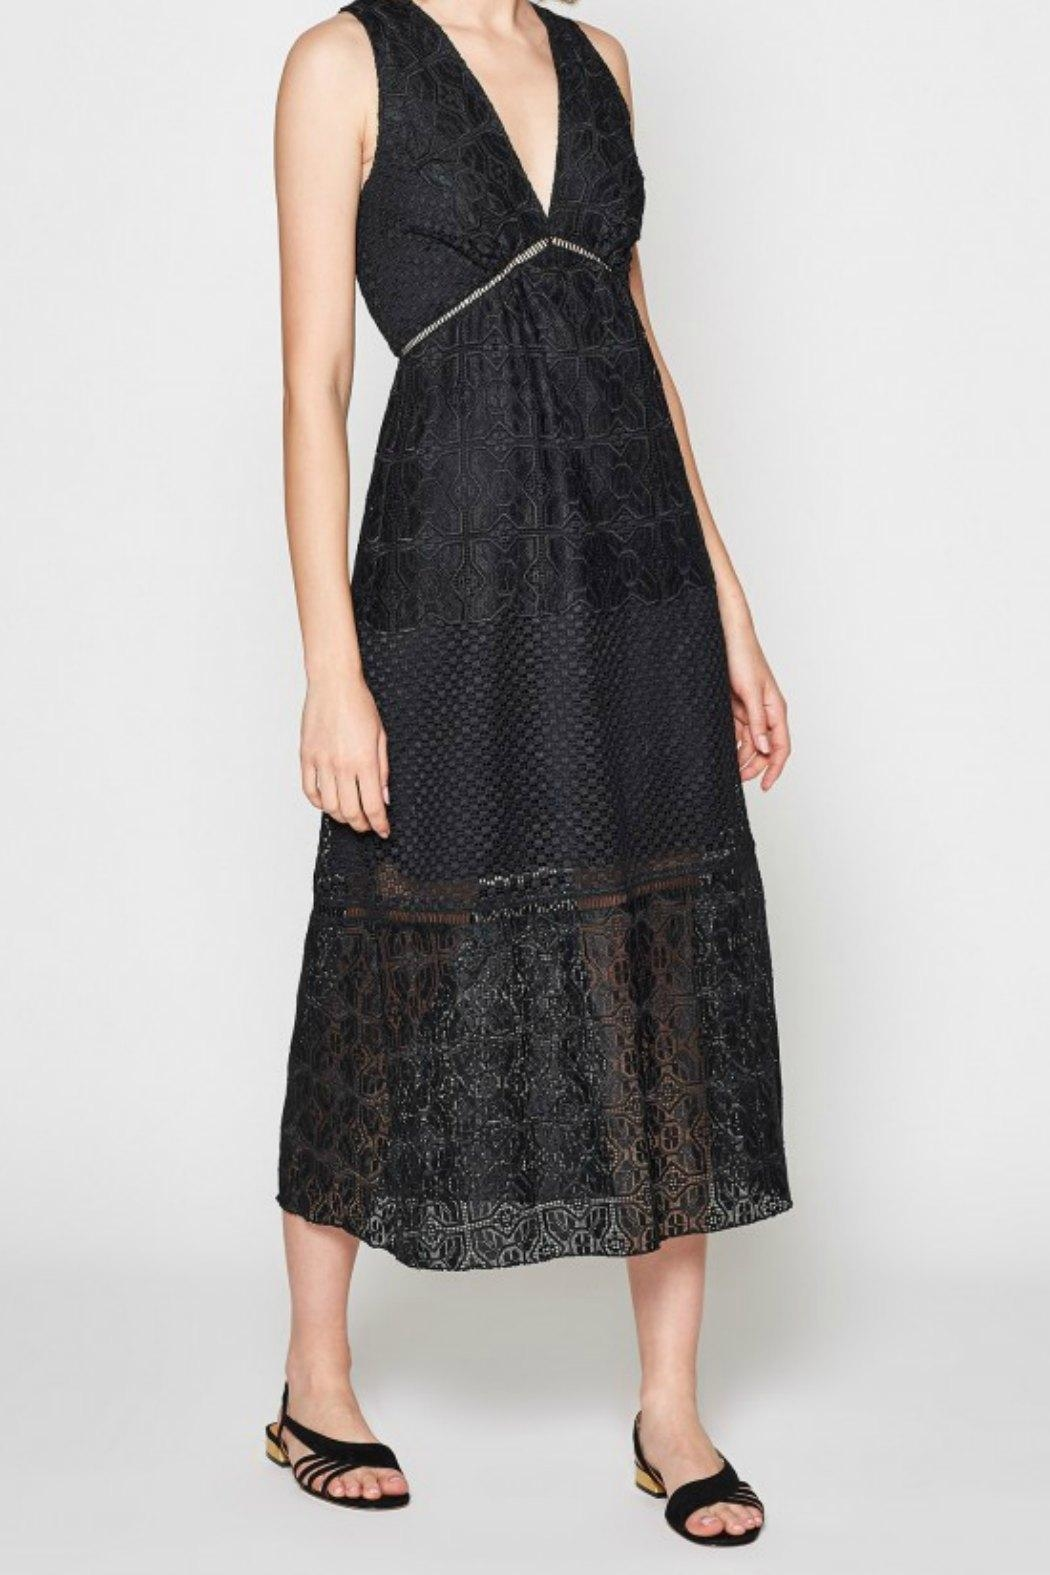 Joie Ardal Lace Dress - Side Cropped Image